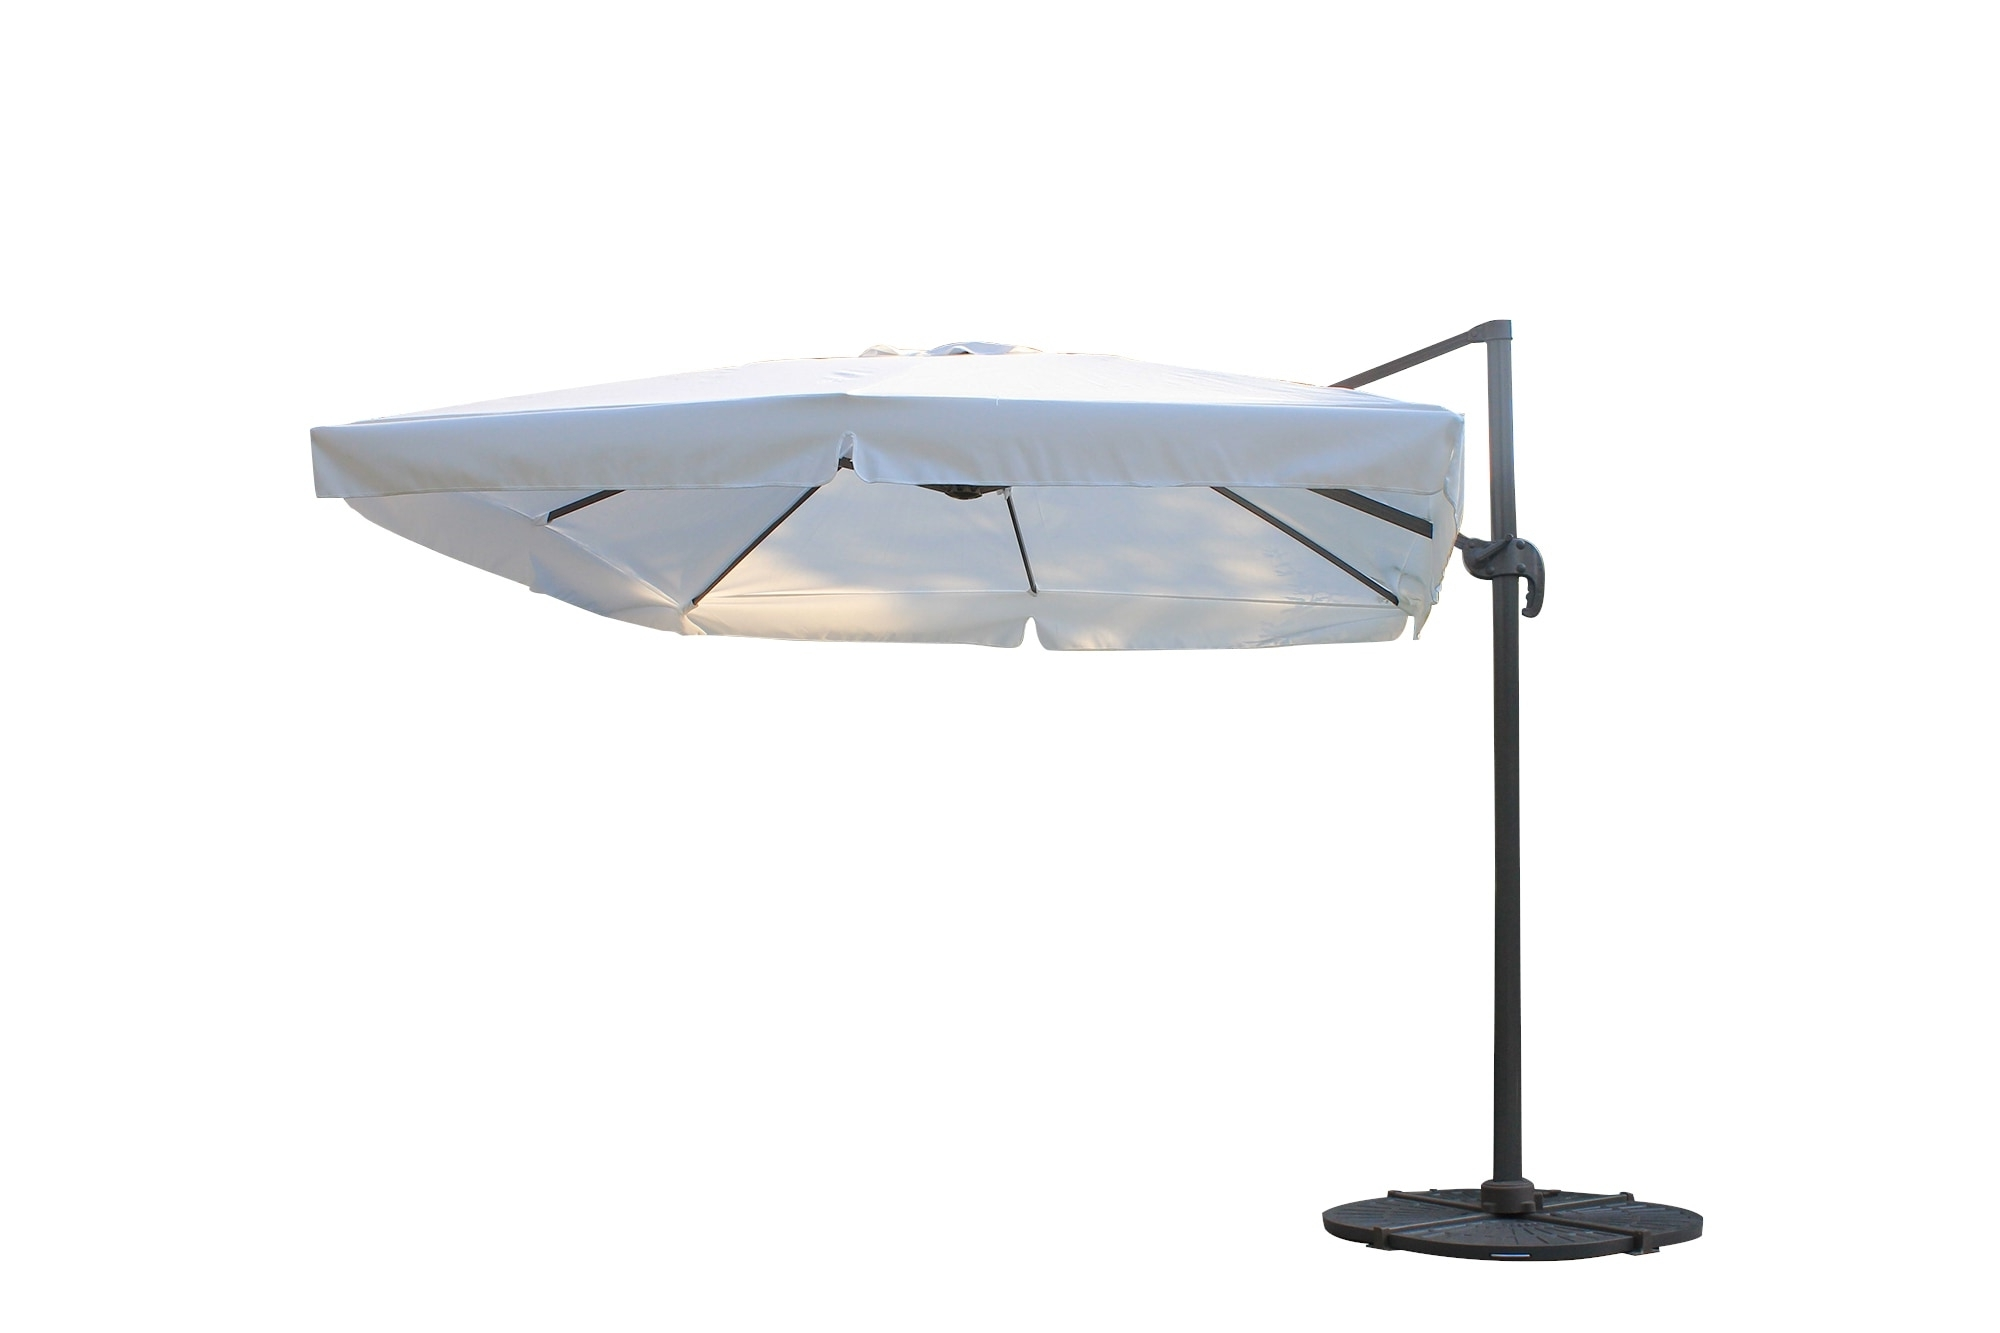 Well Known Kontiki Shade & Cooling Offset Patio Umbrellas 10 Ft Square Offset Intended For Square Patio Umbrellas (View 19 of 20)